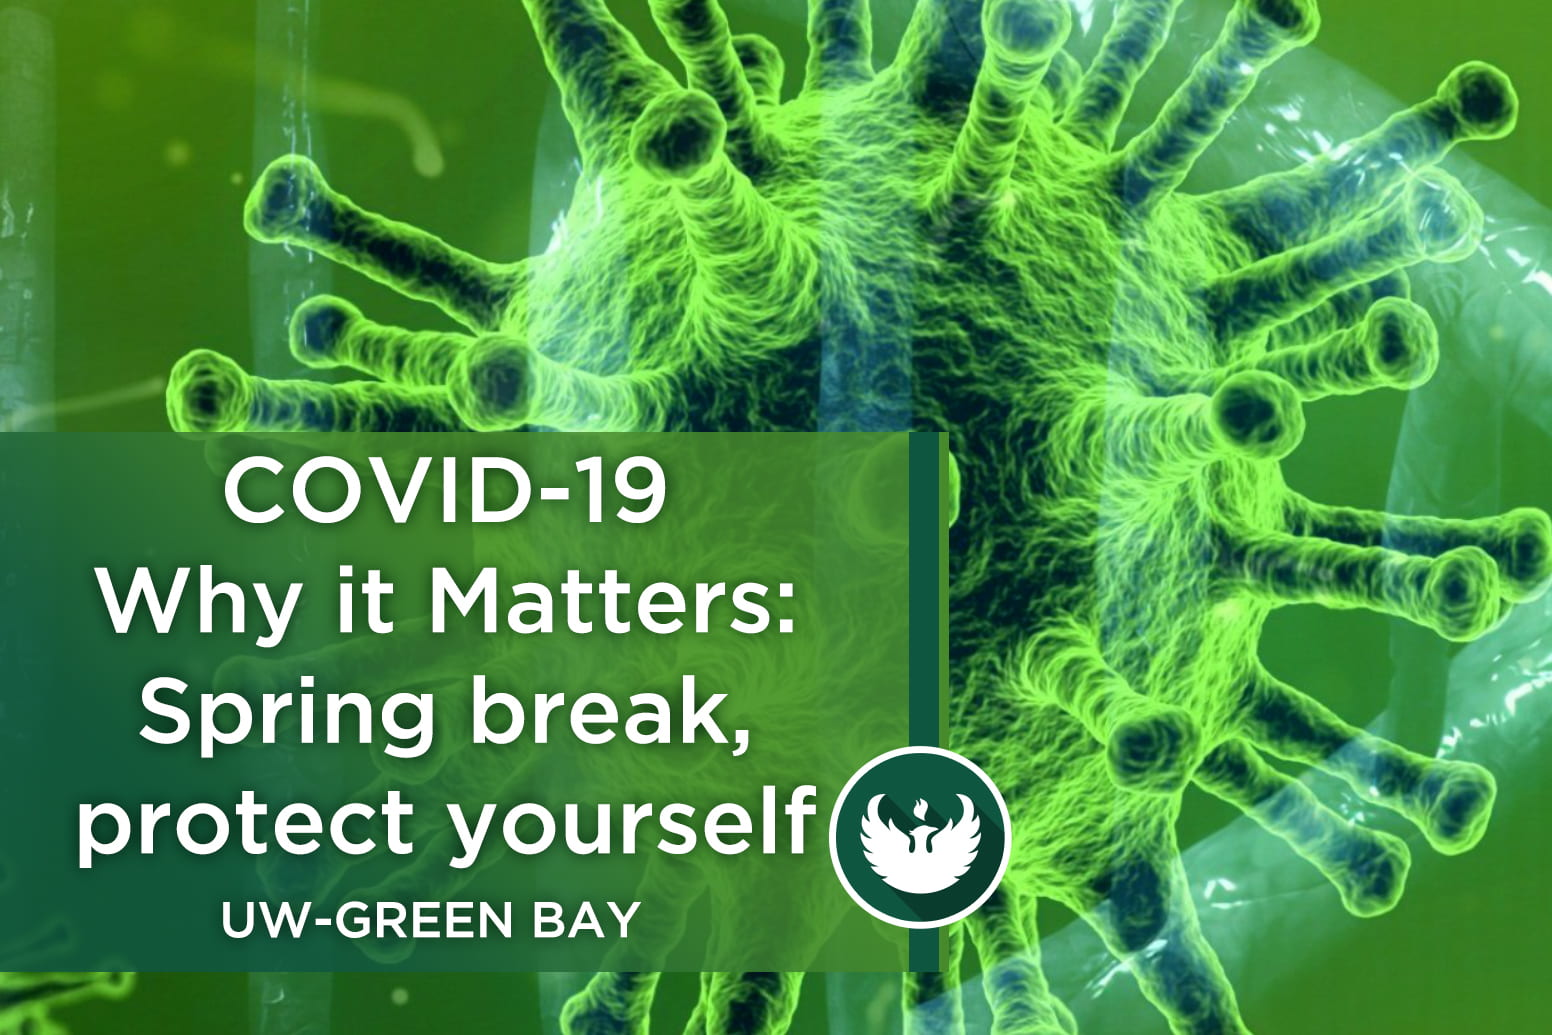 Photo of a microscopic enlargement of the COVID-19 virus with the text, COVID-19 Why it matters: Spring break, protect yourself